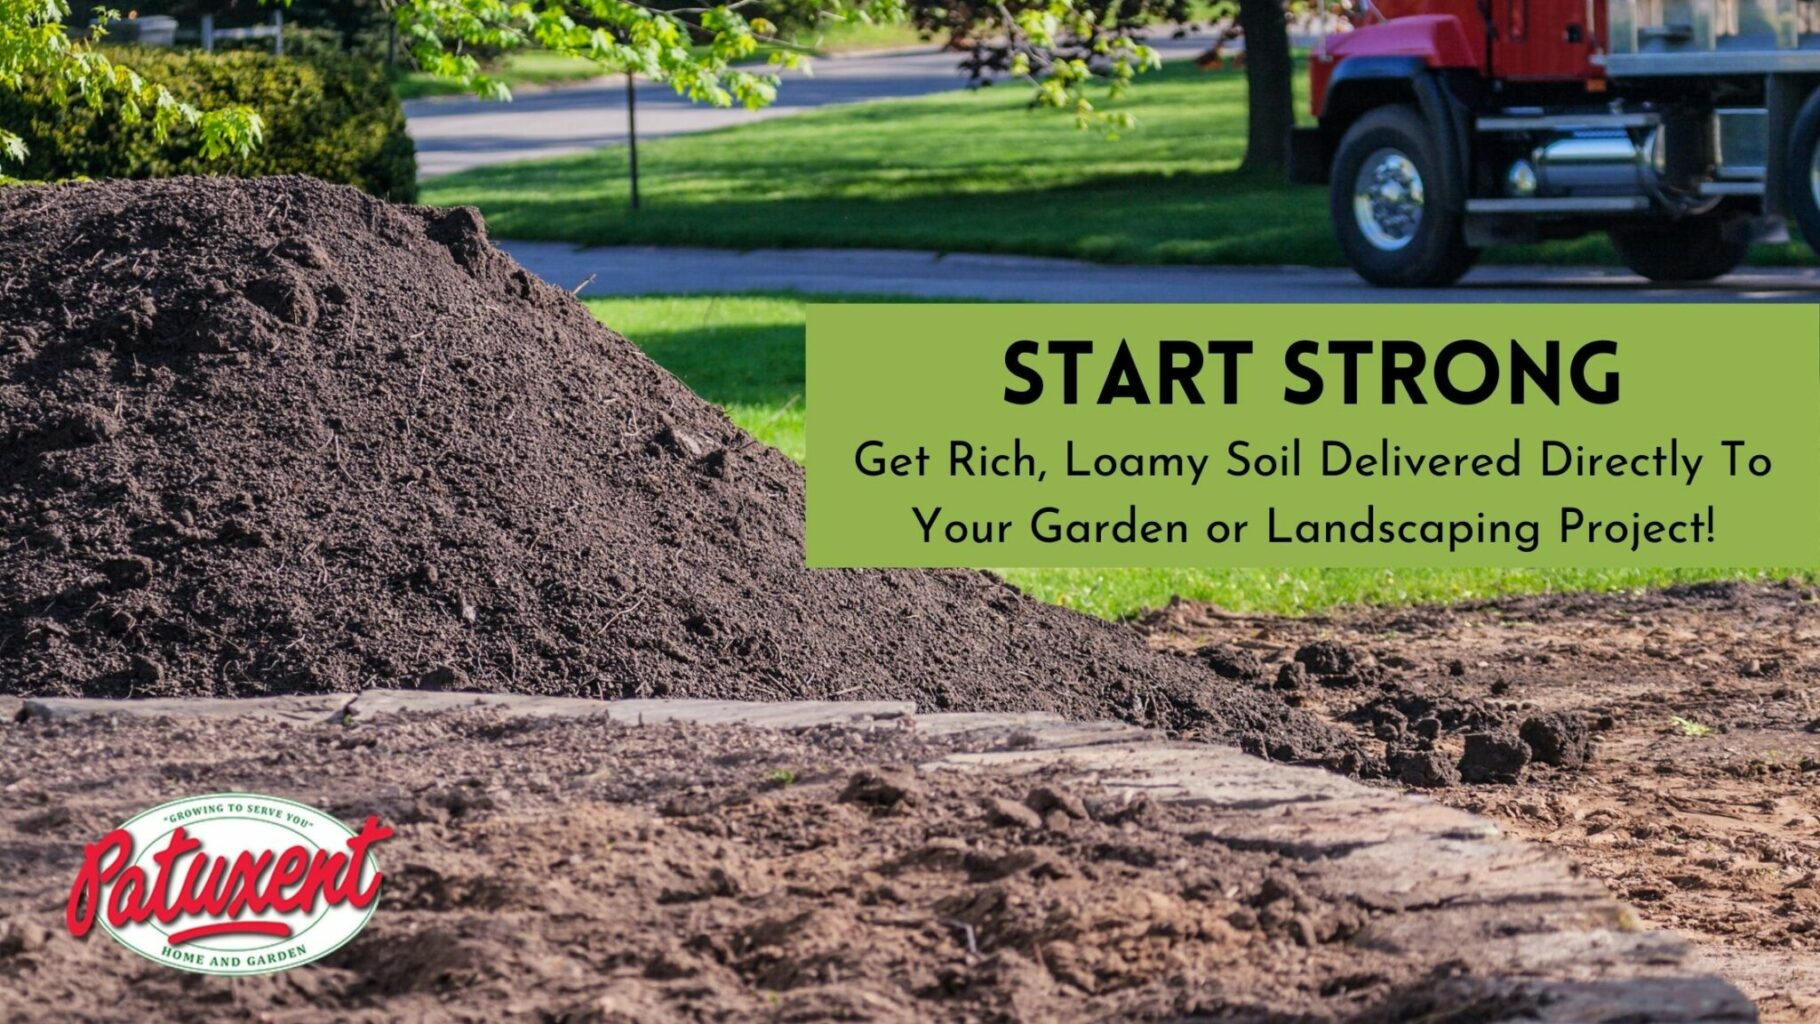 get topsoil delivered to you by red truck with patuxent logo